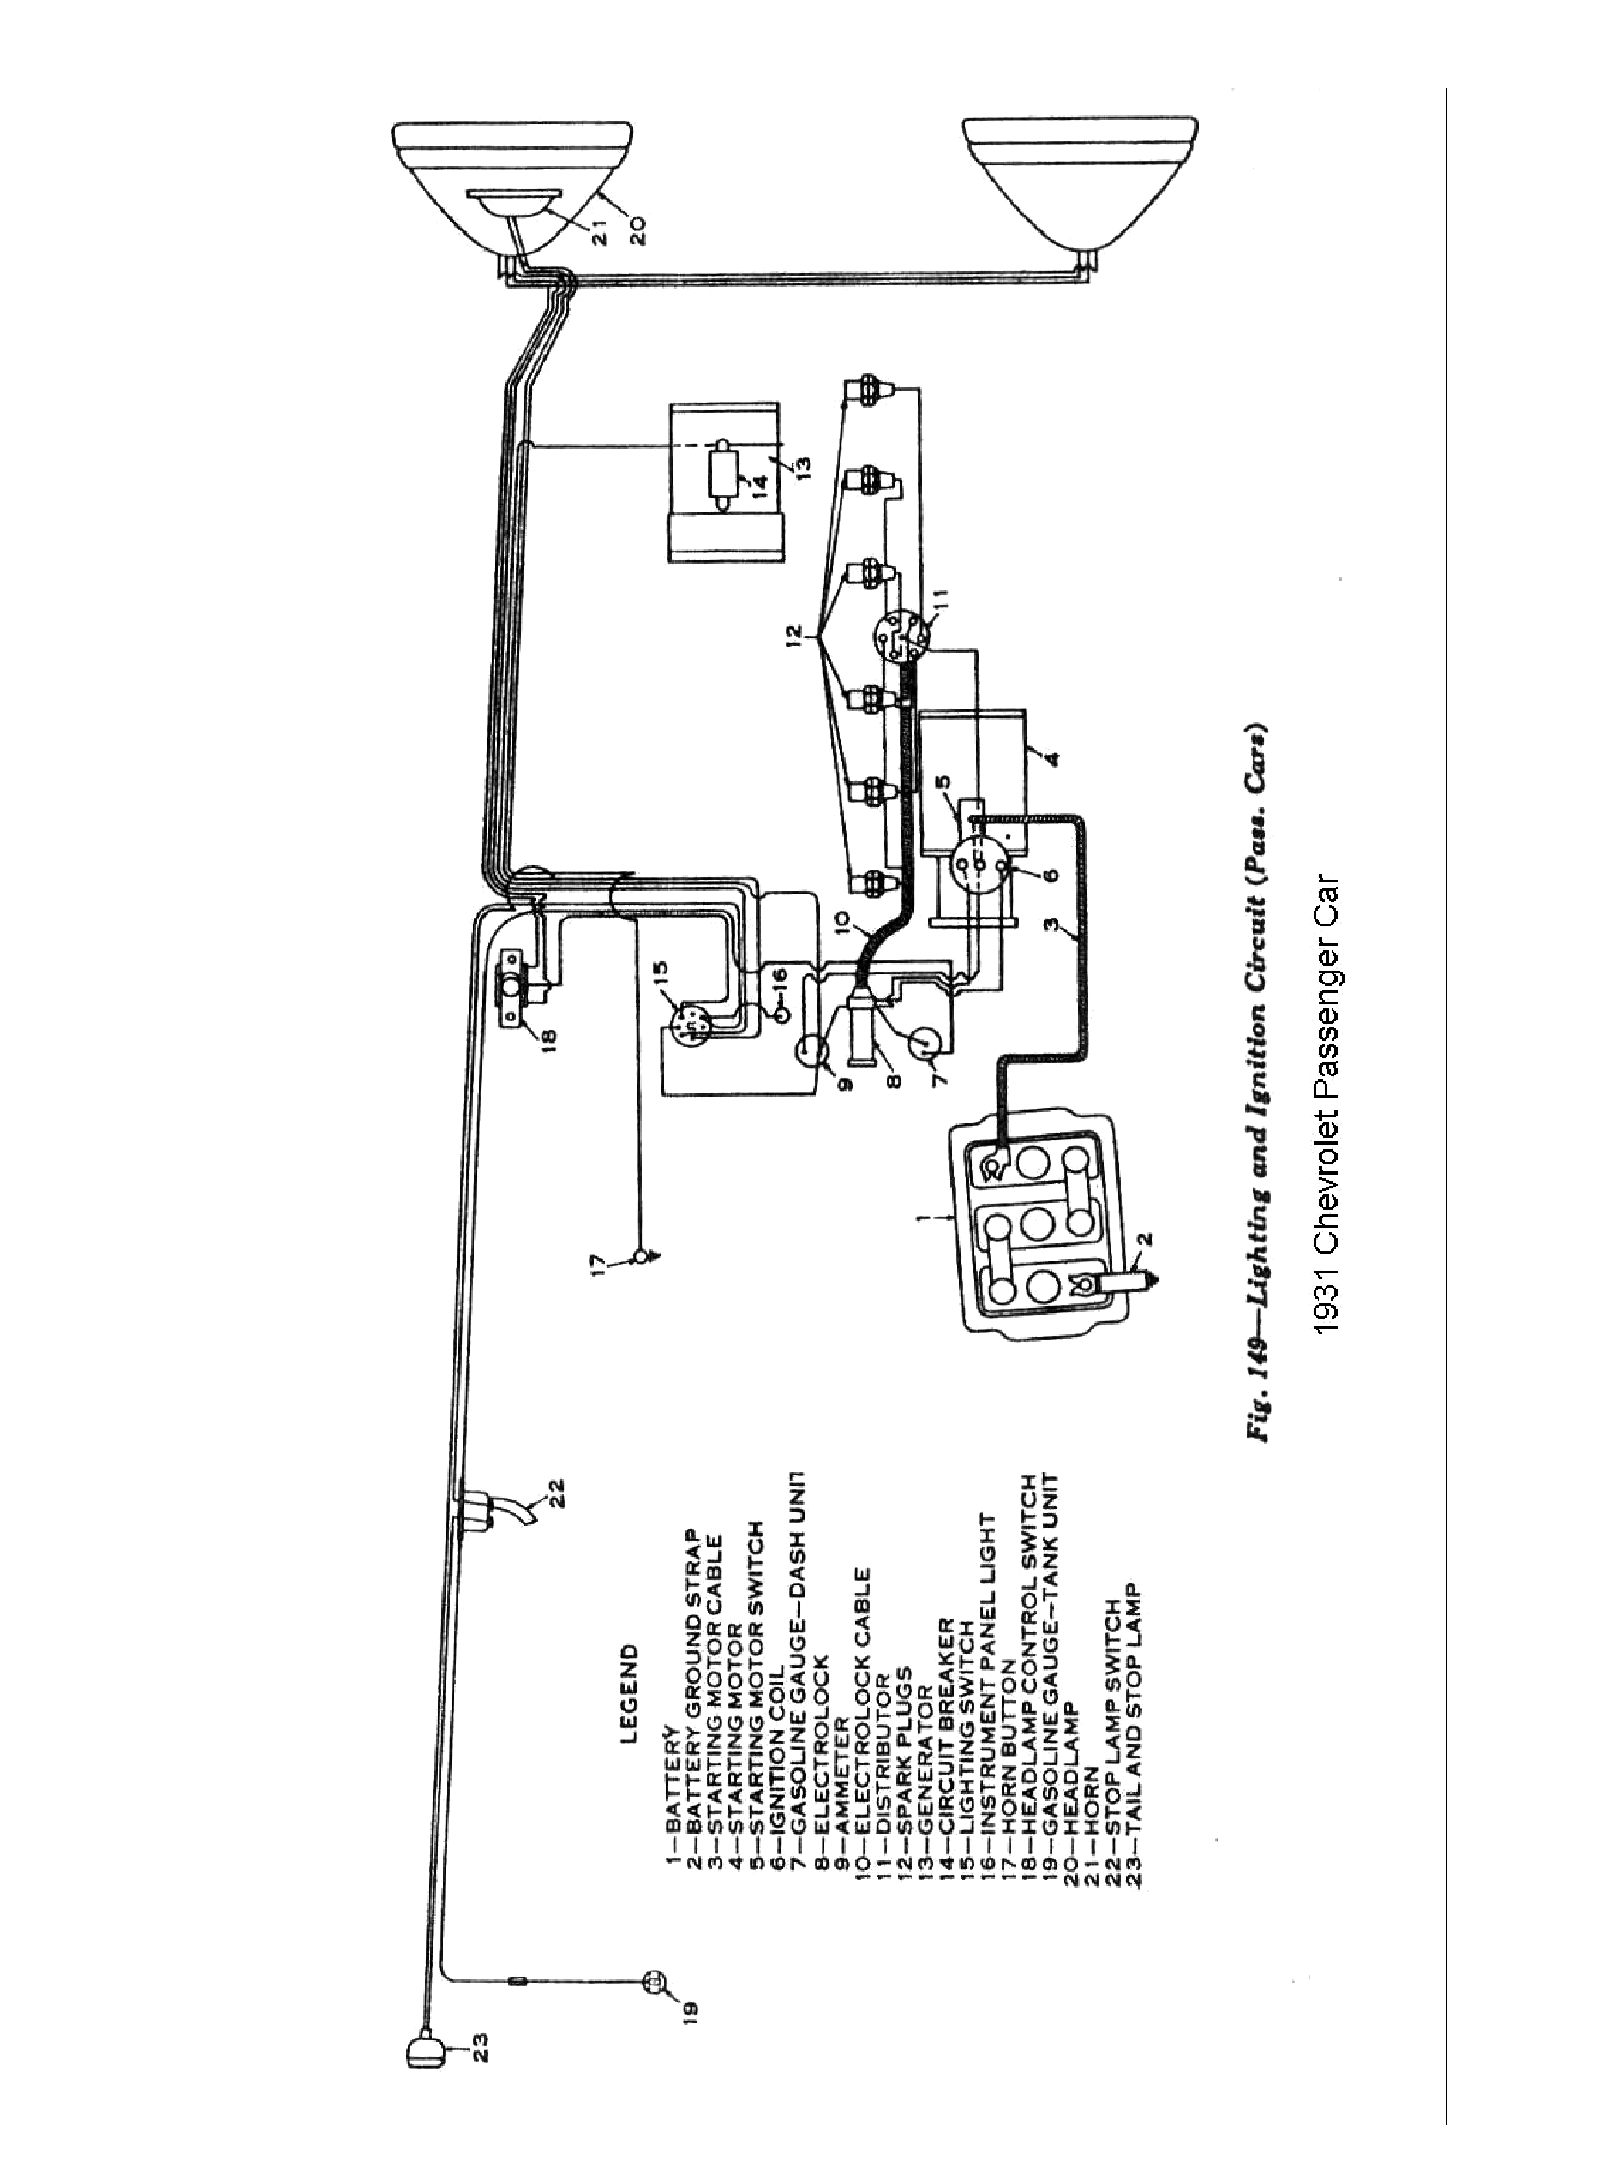 89 Chevy Wiring Diagram besides Inside The Column together with 4 Wire Ignition Switch Diagram further I Need Help 2002 Vacuum Diagram 39782 in addition 80 Corvette Distributor Diagram. on chevy s10 distributor wiring diagram